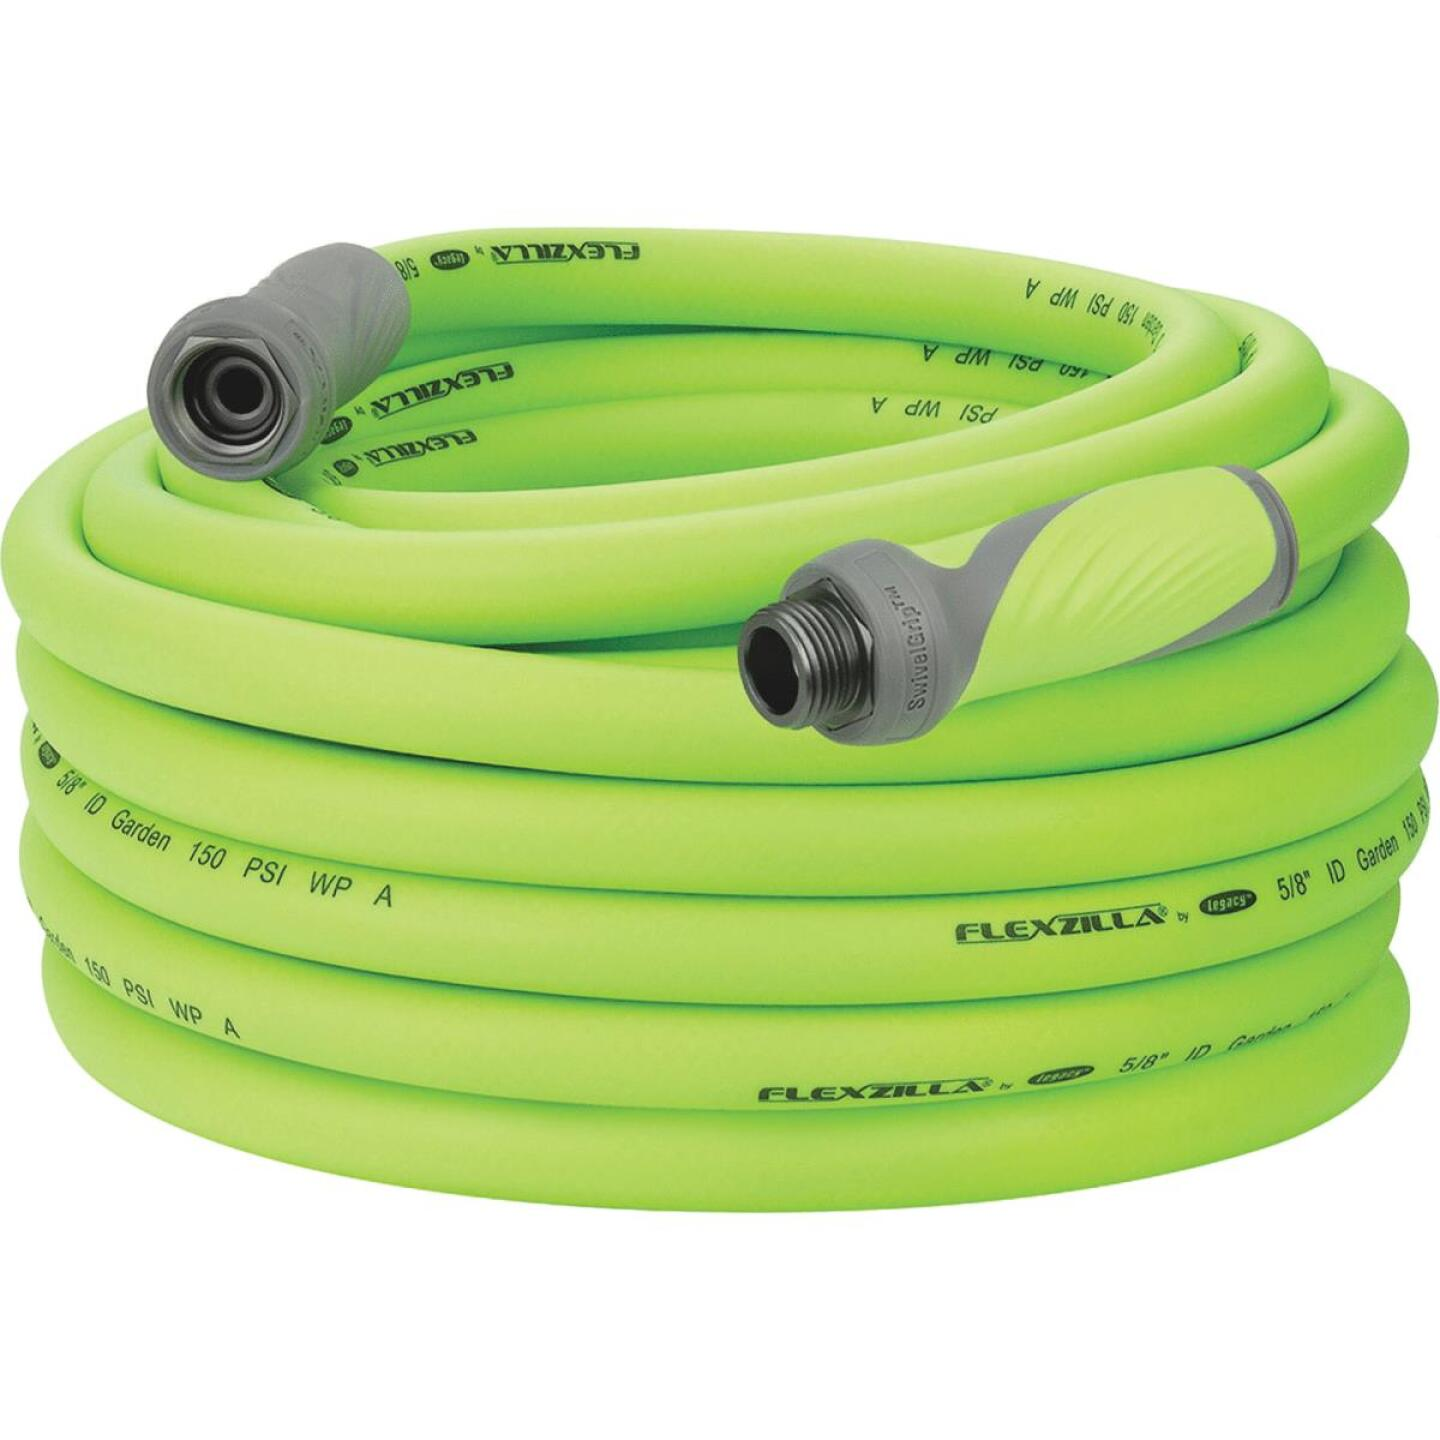 Flexzilla 5/8 In. Dia. x 75 Ft. L. Drinking Water Safe Garden Hose with SwivelGrip Connections Image 3